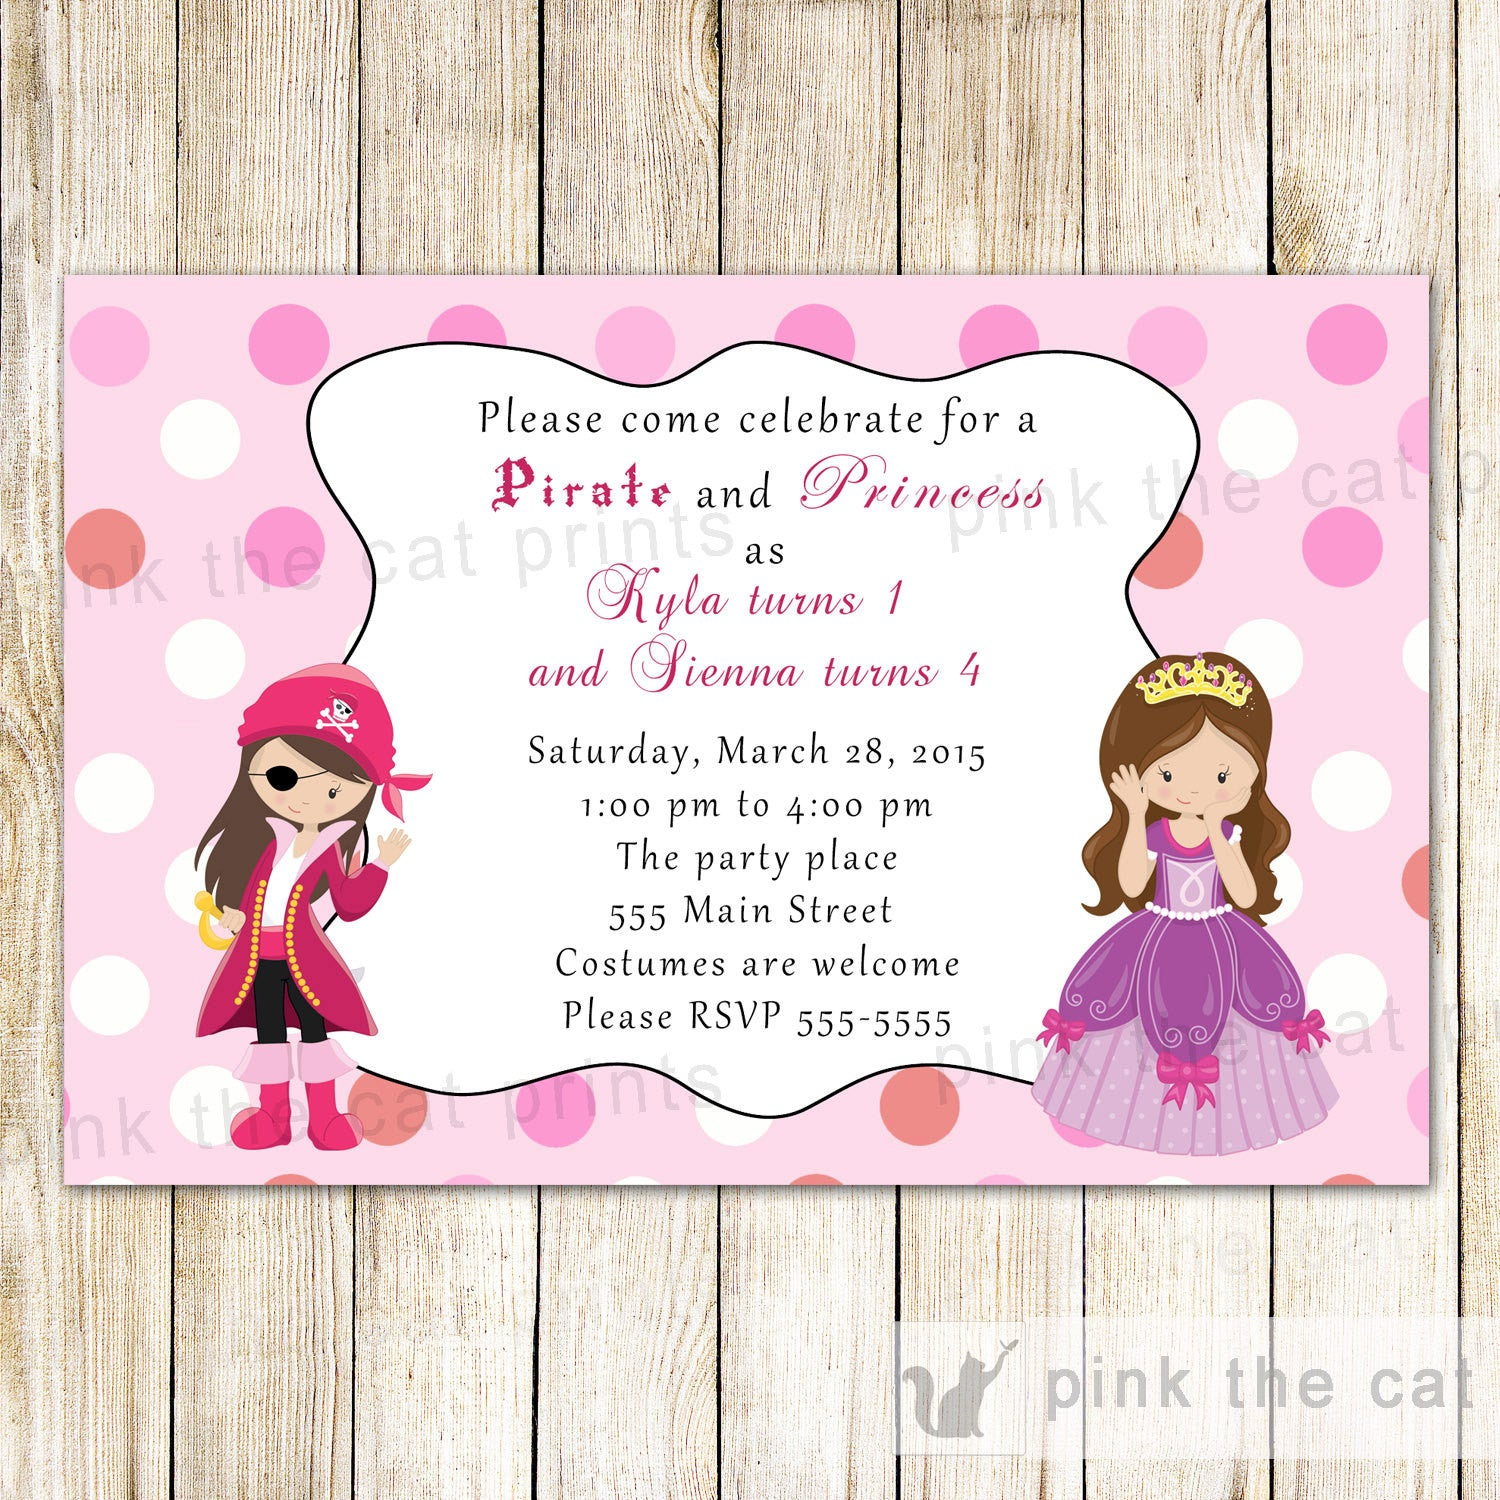 Pirate Princess Invitation Girl Birthday Party – Pink The Cat